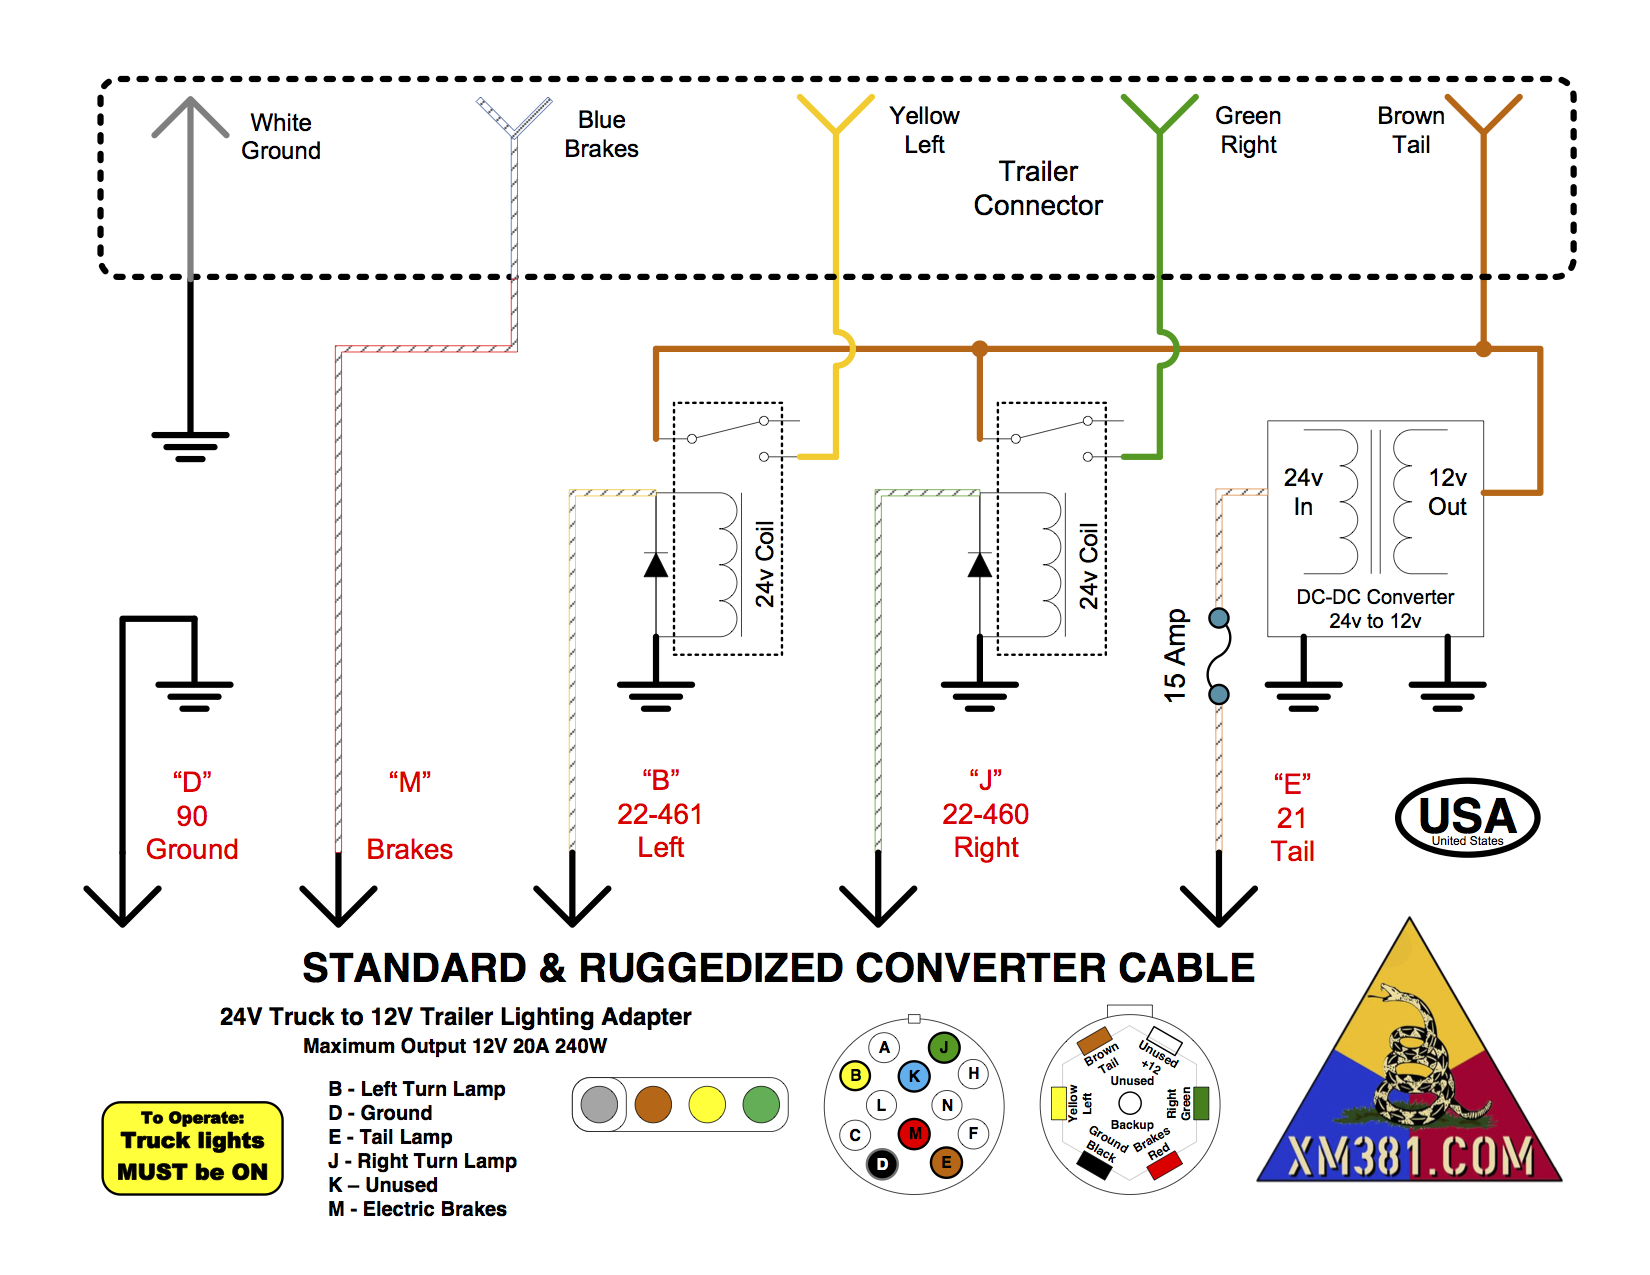 Xm381 24 Volt Military Truck To 12 Civillian Trailer Lighting Euro Wiring Diagram Ruggedized Frame Rail Mounted Converter